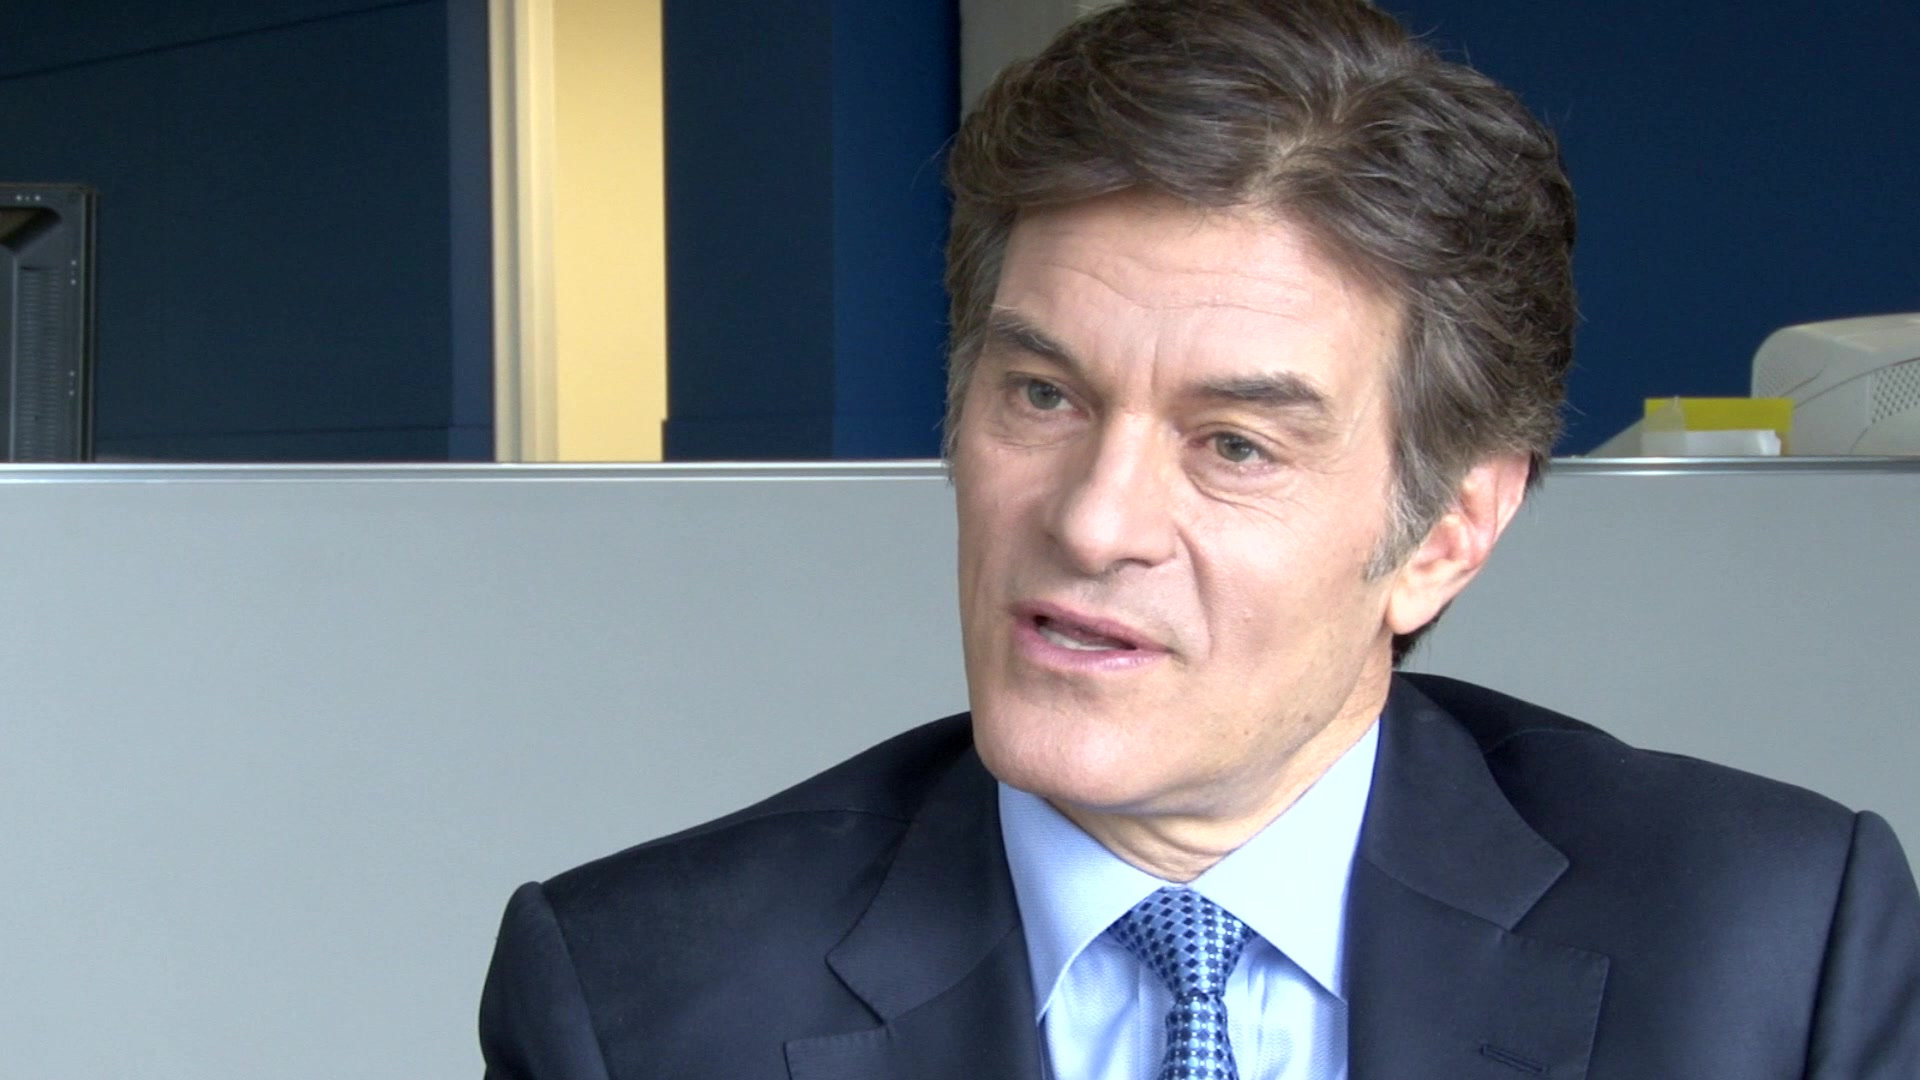 Dr. Oz: Gluten-Free Is A Scam